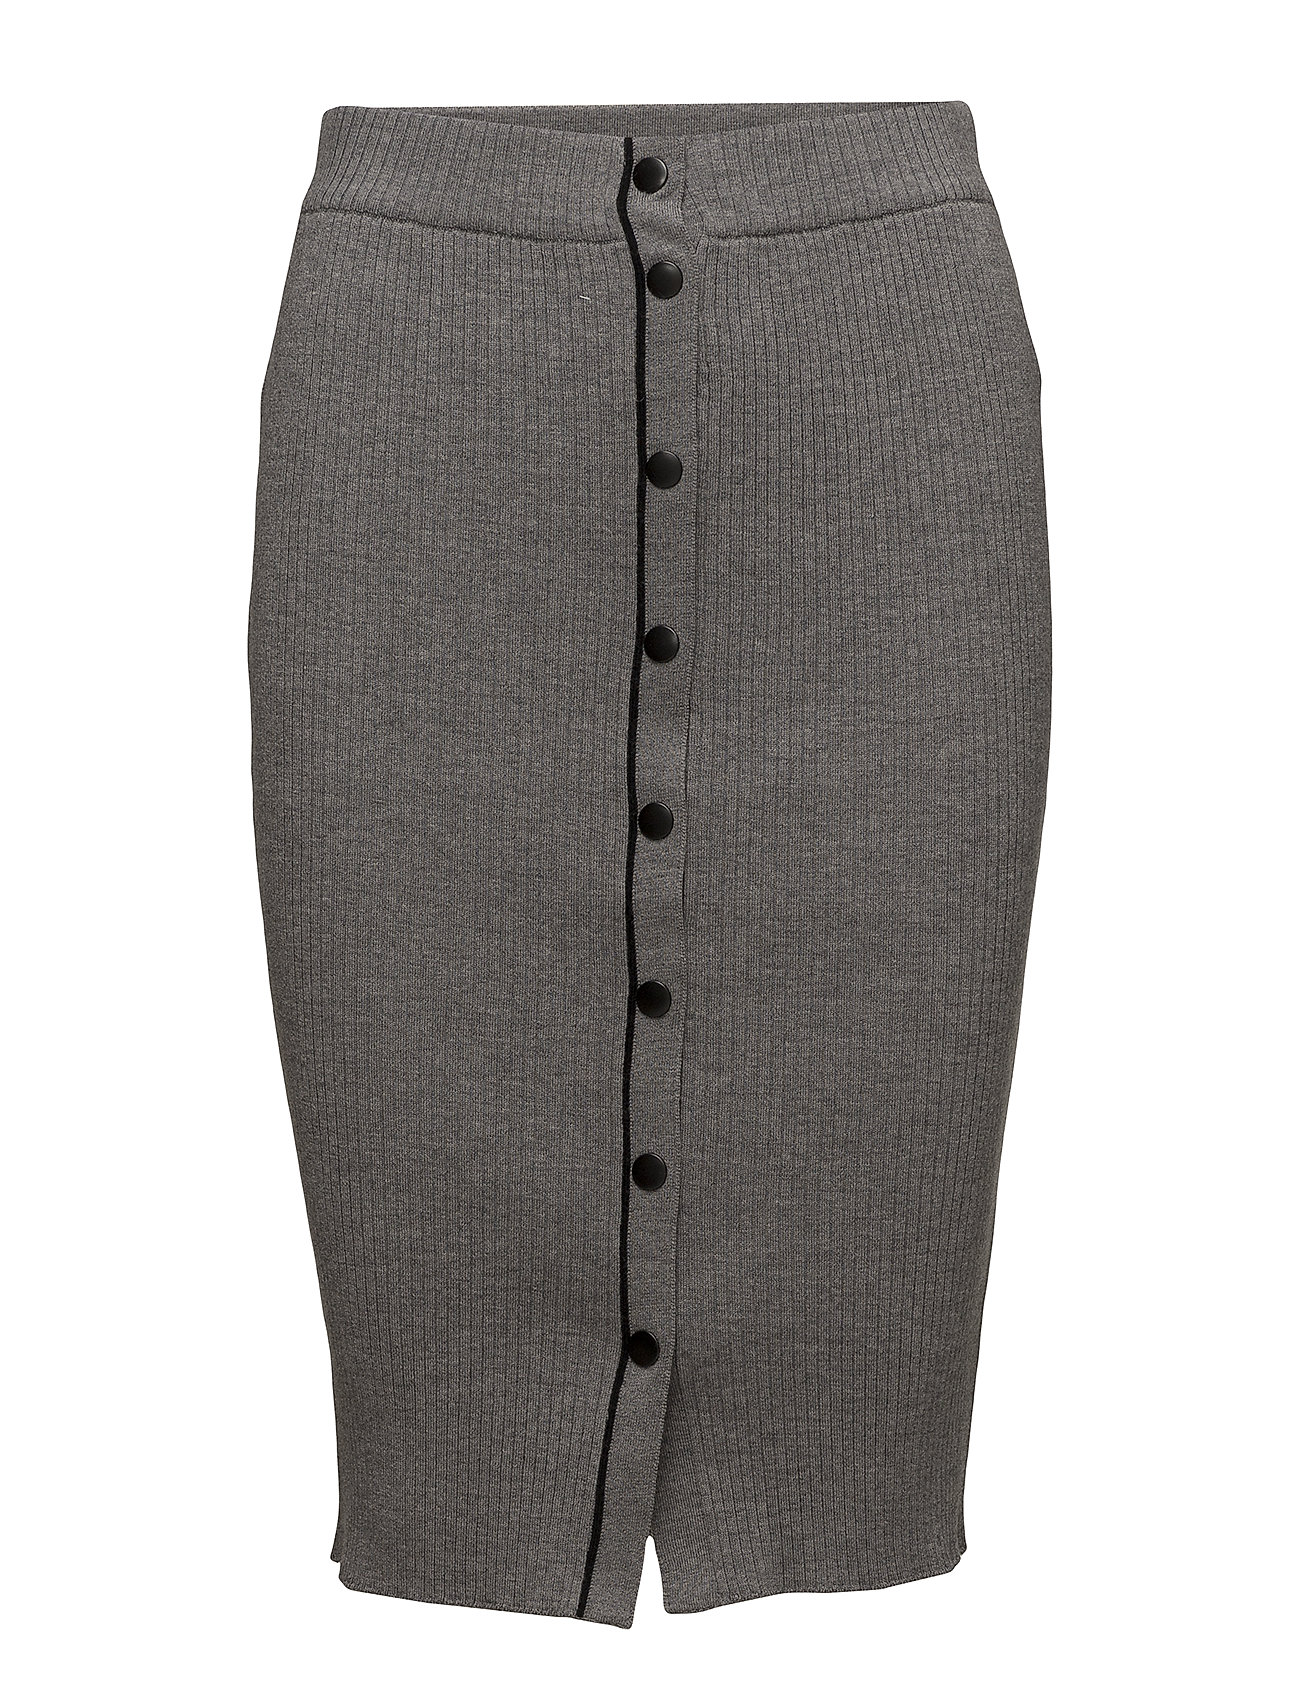 T by Alexander Wang SKINNY RIB PENCIL SKIRT W/ SNAP DETAIL - HEATHER GREY